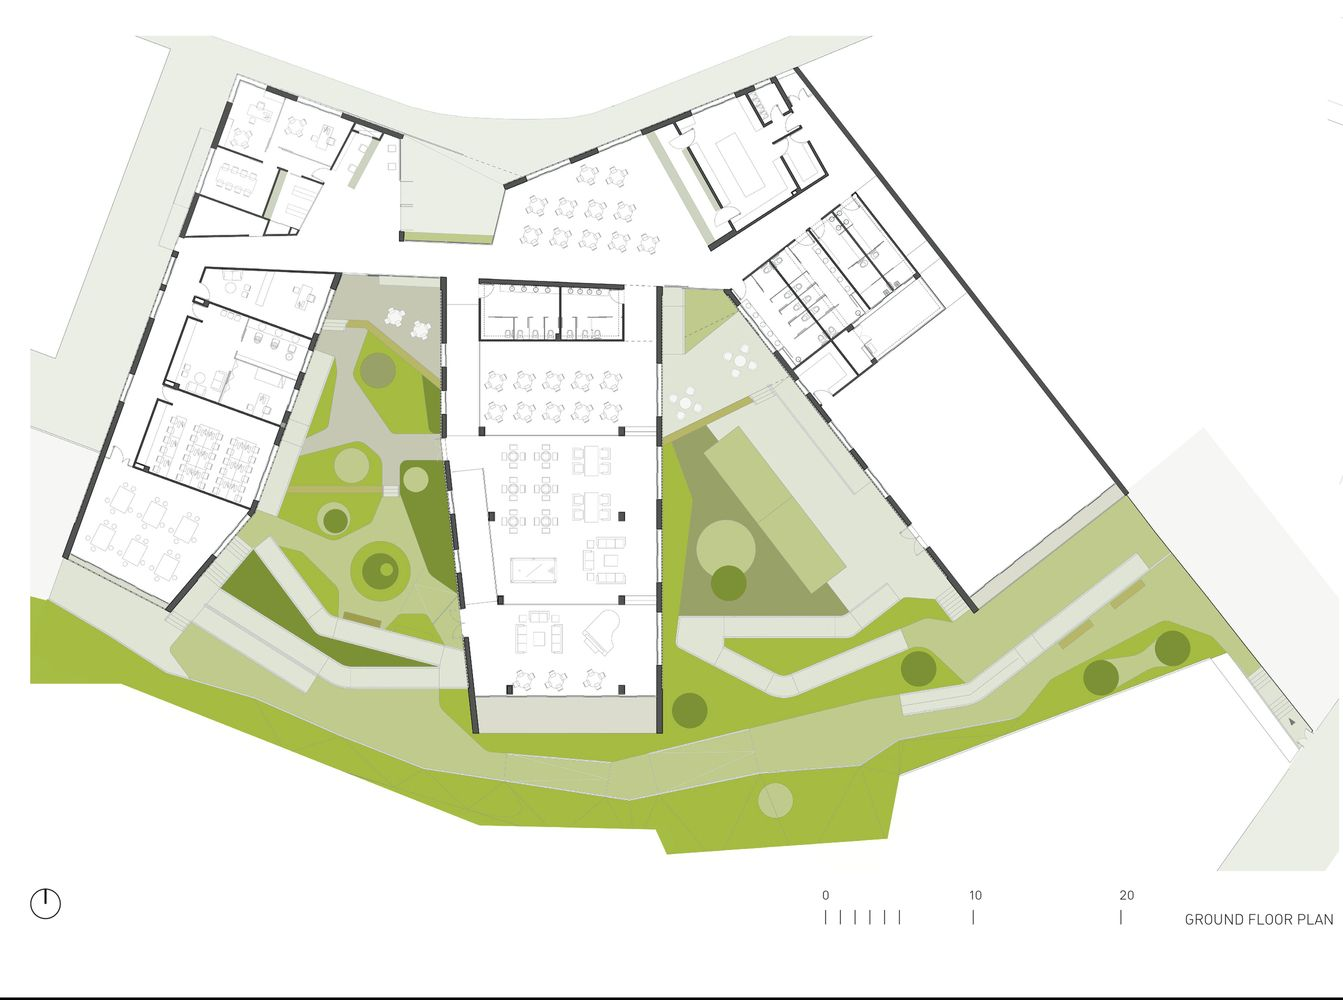 Daycare Building Floor Plans: Gallery Of Day-Care Center For Elderly People / Francisco